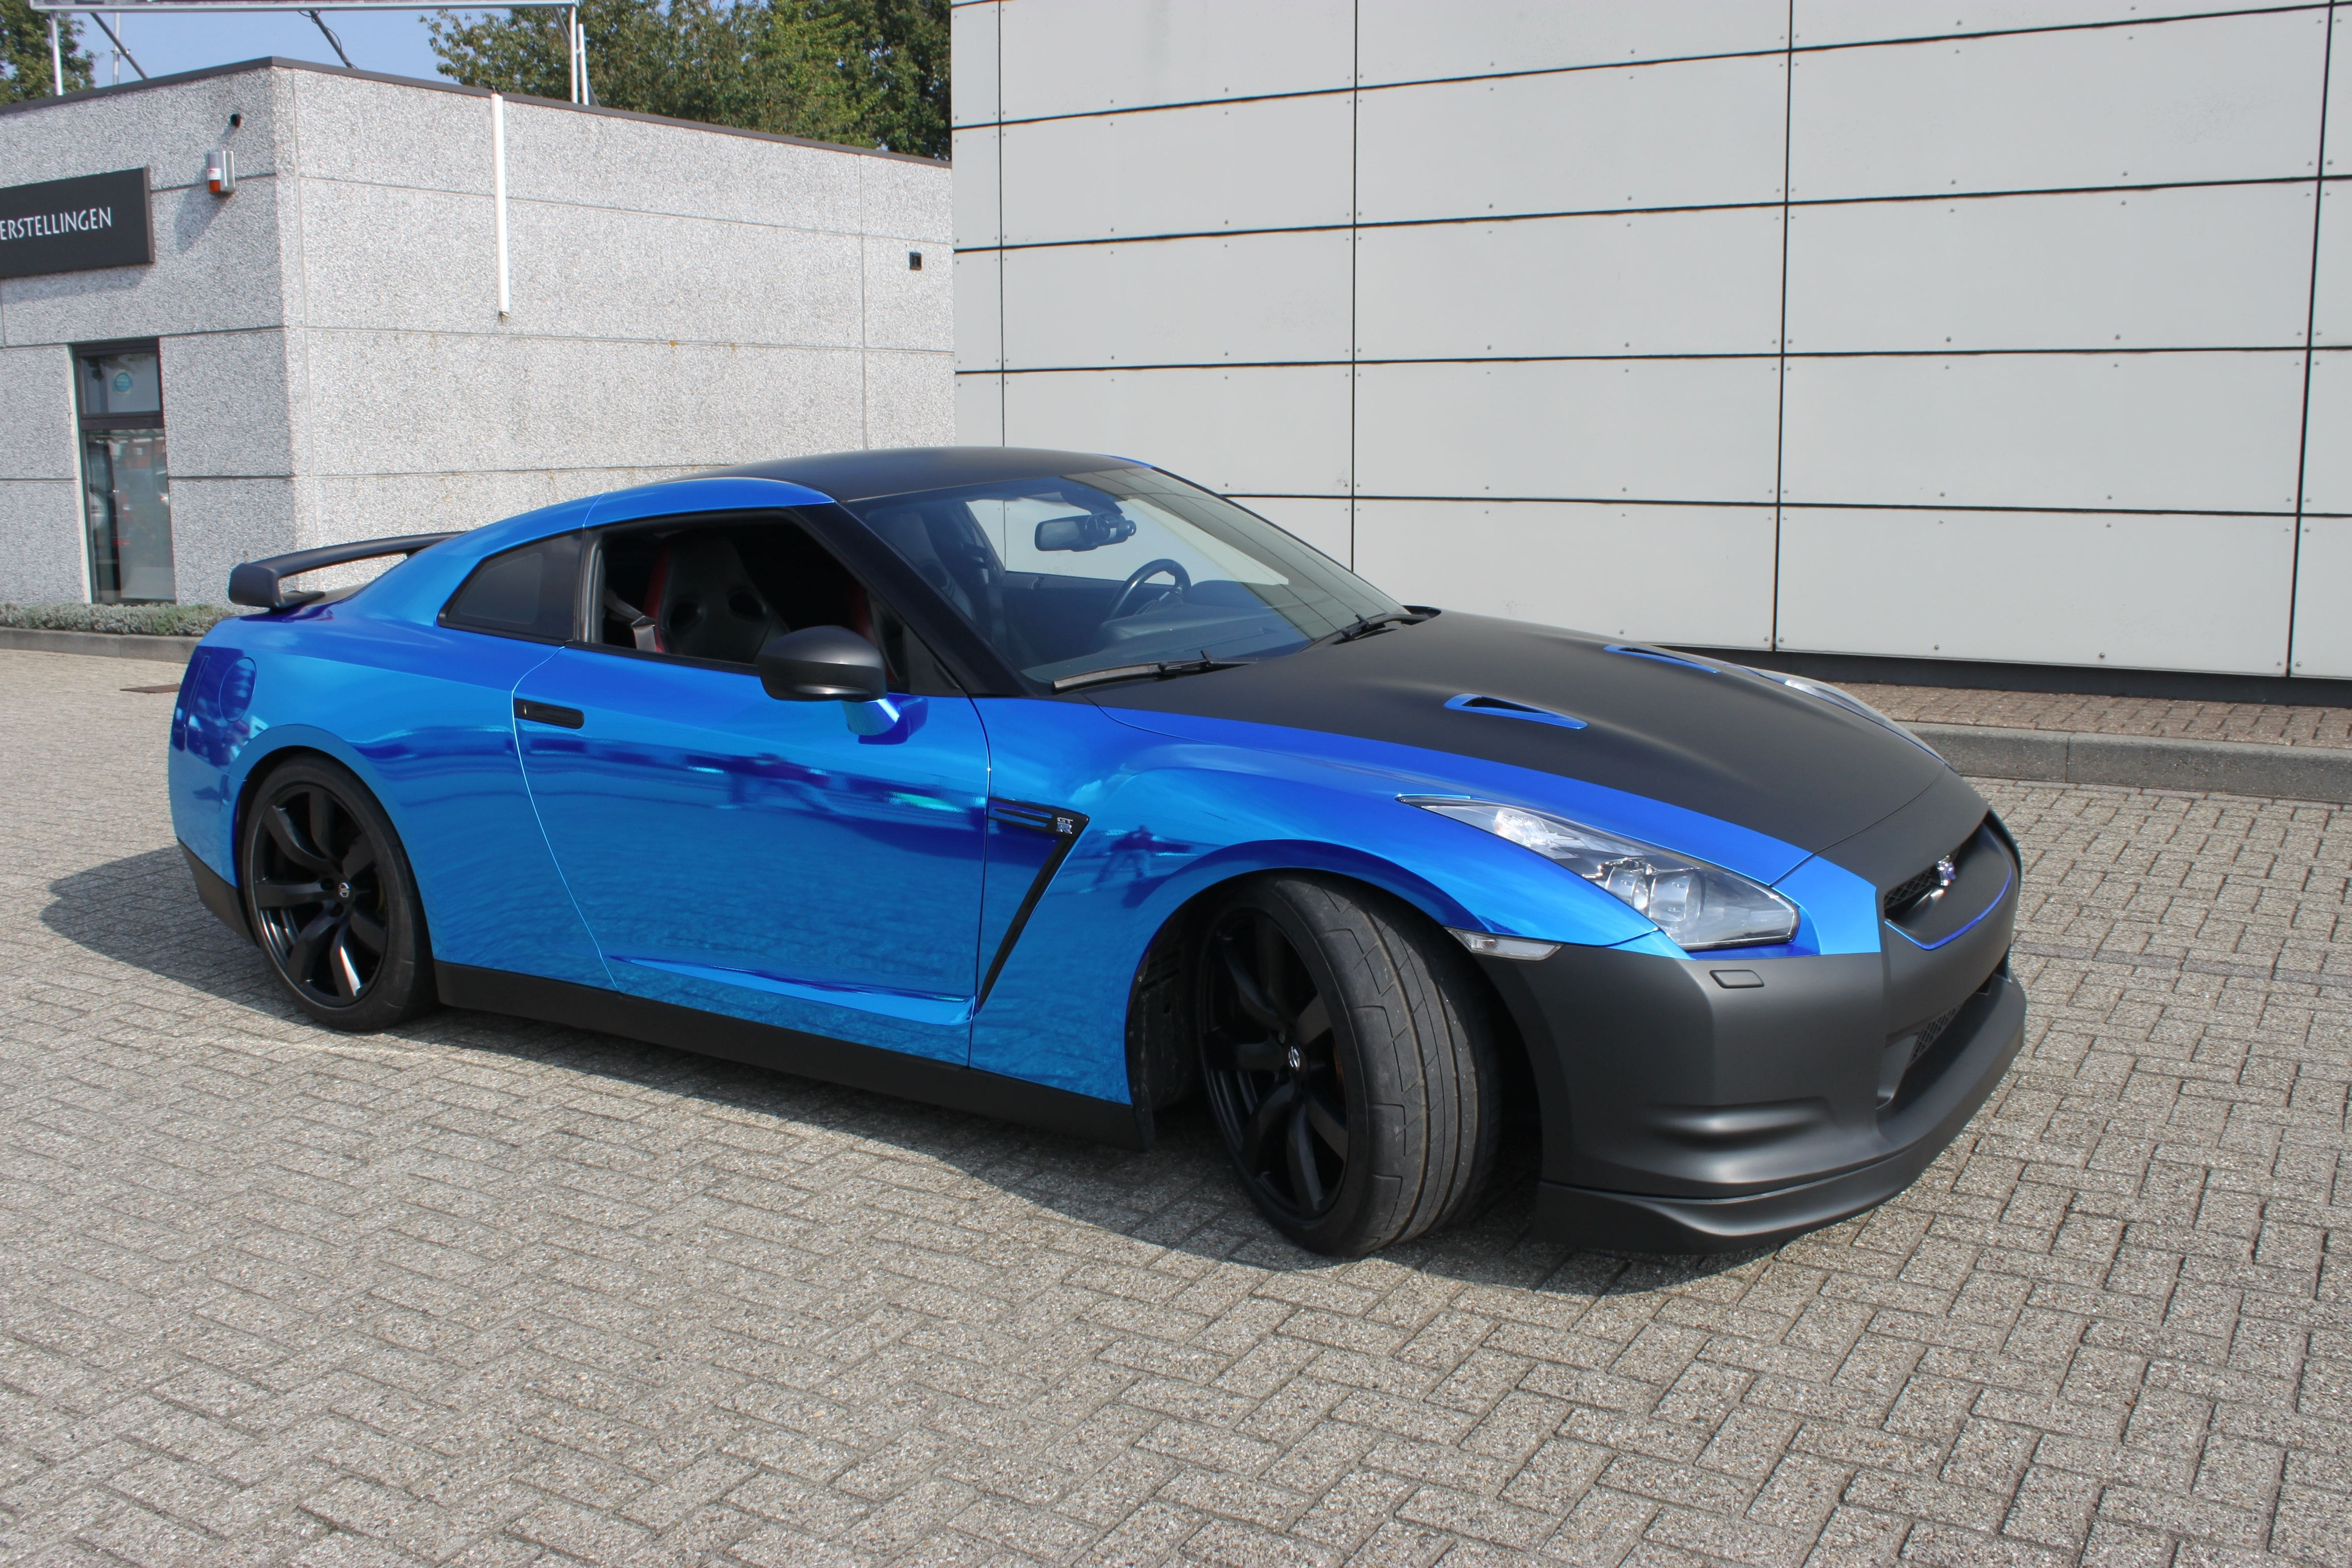 Nissan GT-R met Blue Chrome Wrap, Carwrapping door Wrapmyride.nu Foto-nr:6475, ©2020